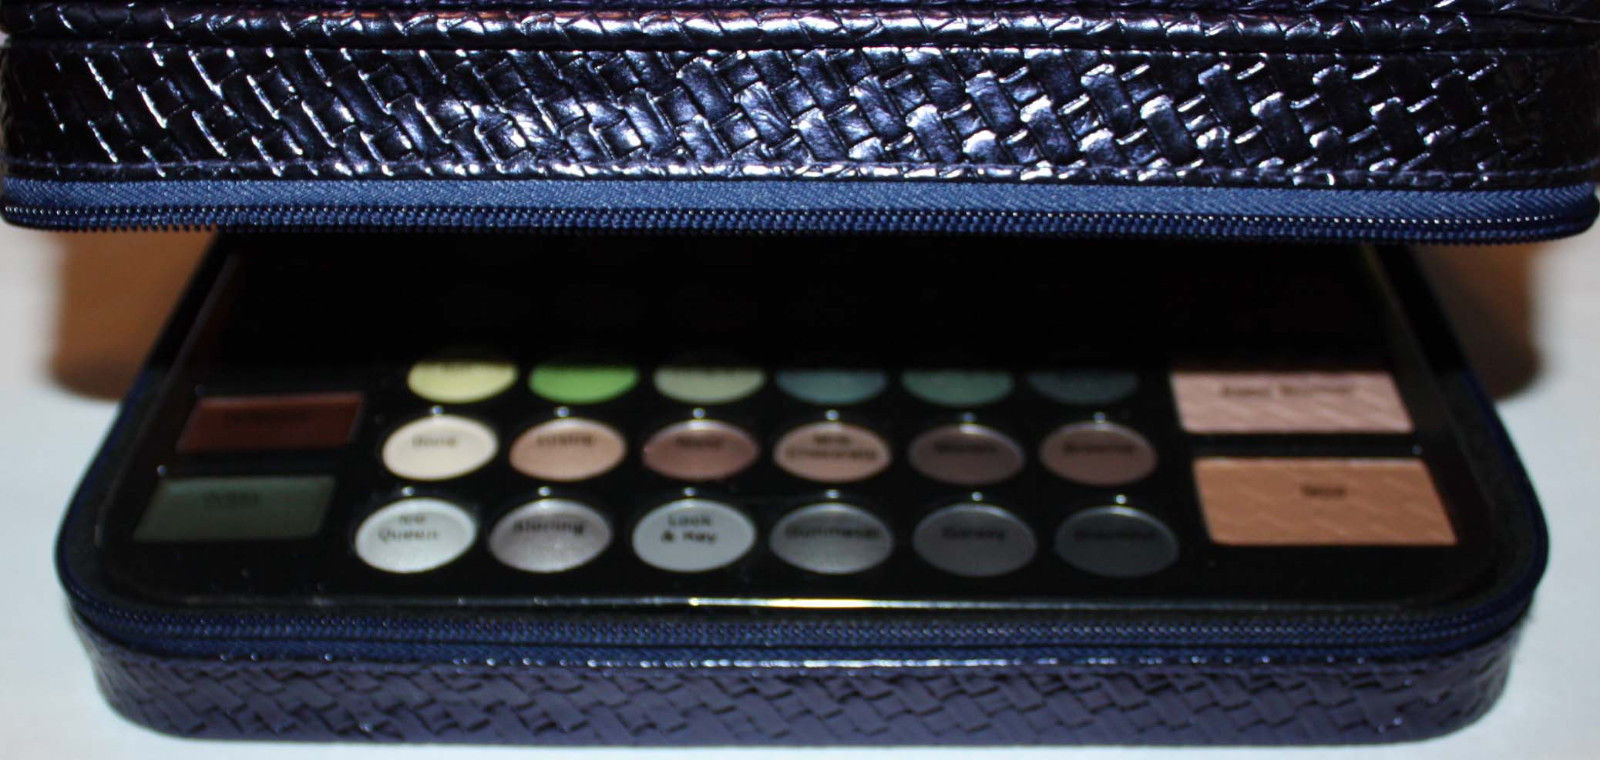 makeup palette inside lower zippered compartment